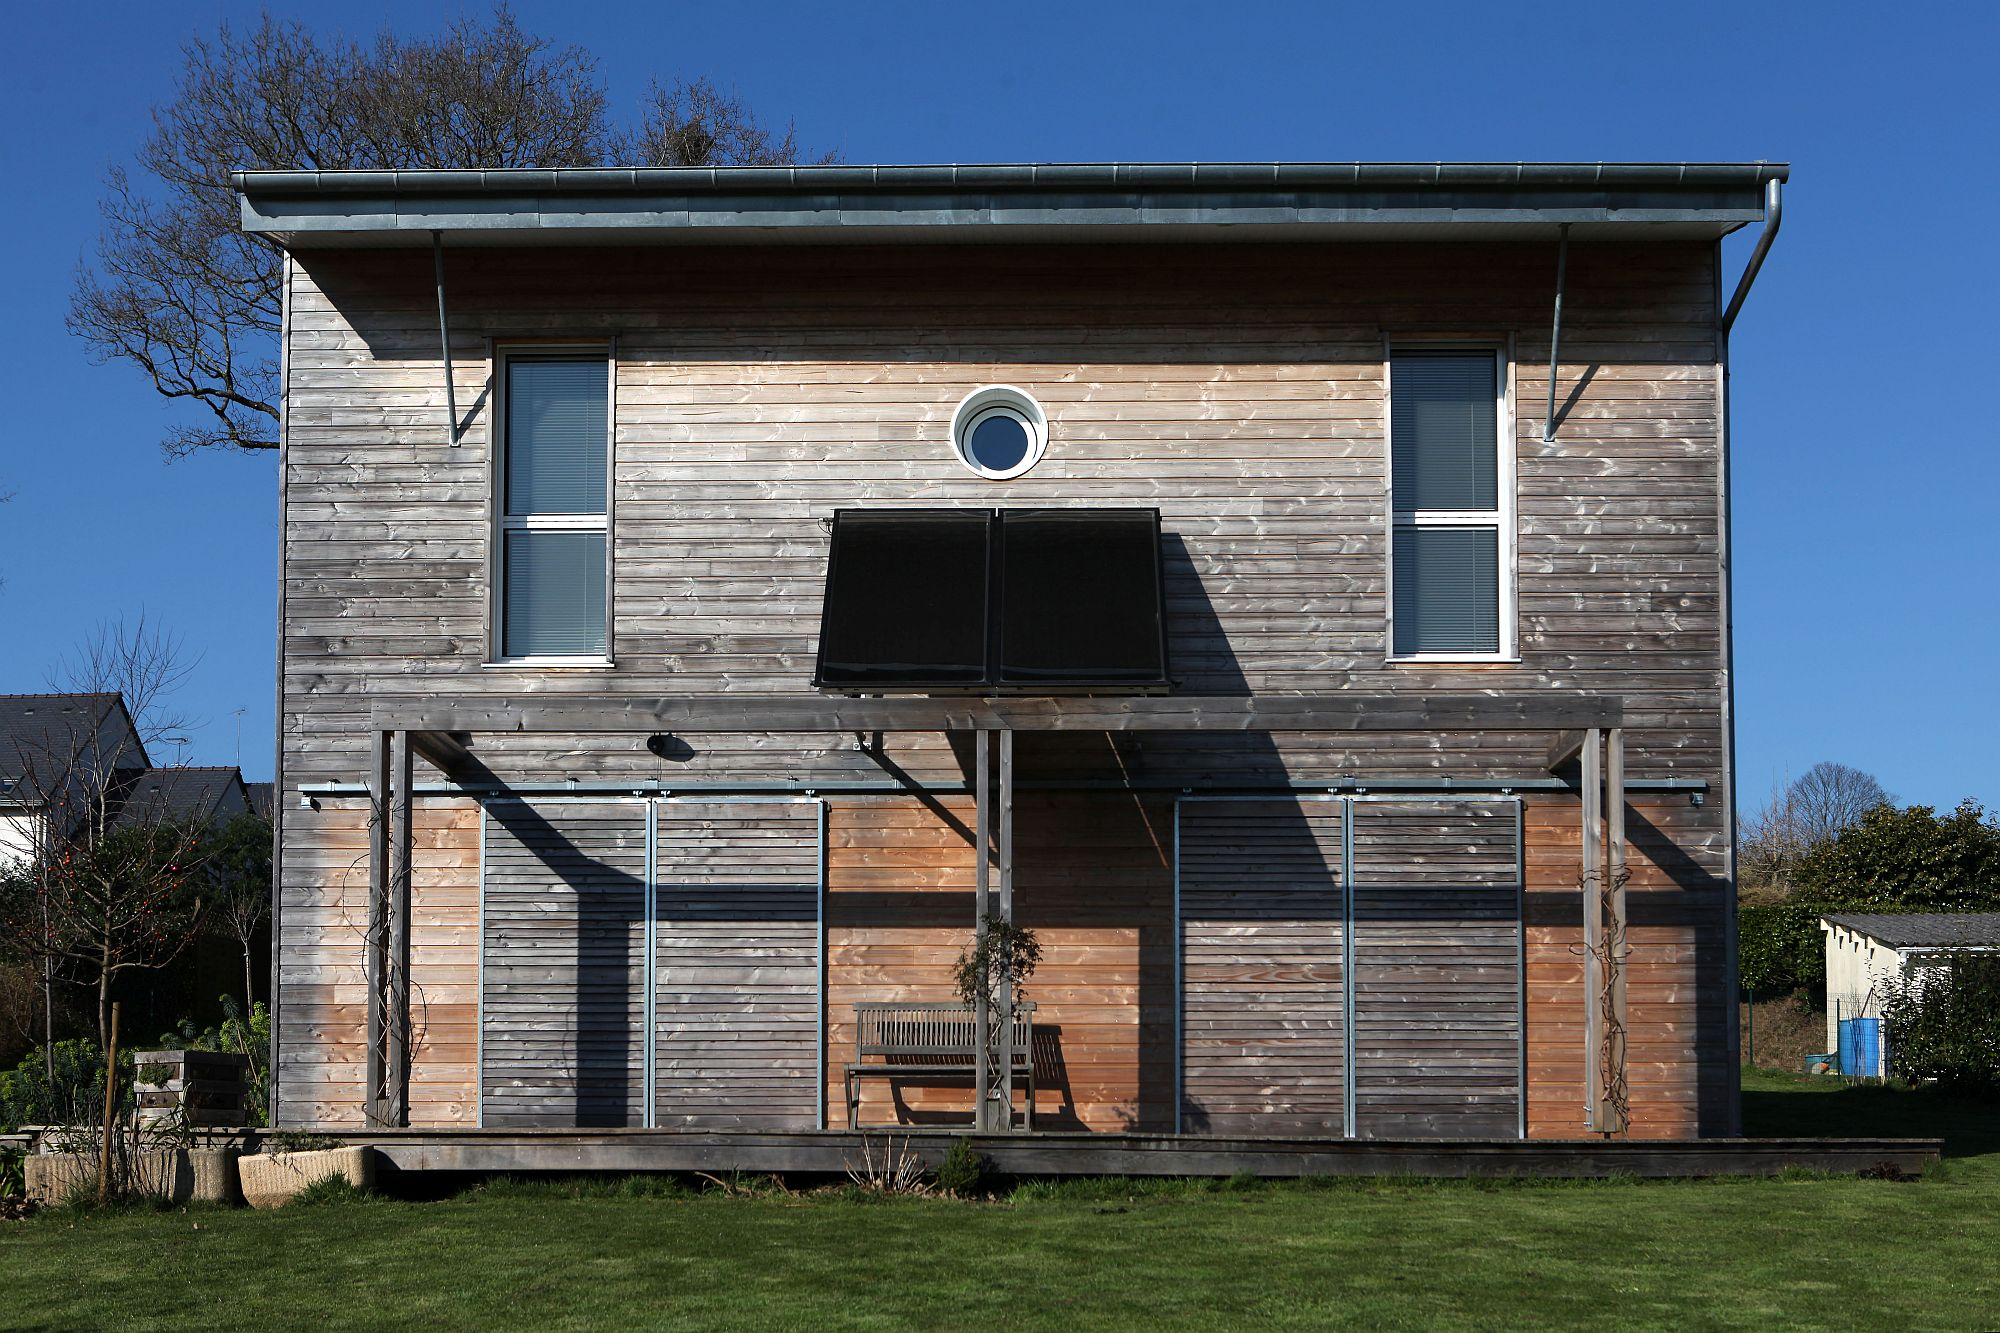 Wooden exterior of the French house with modern sustainable design